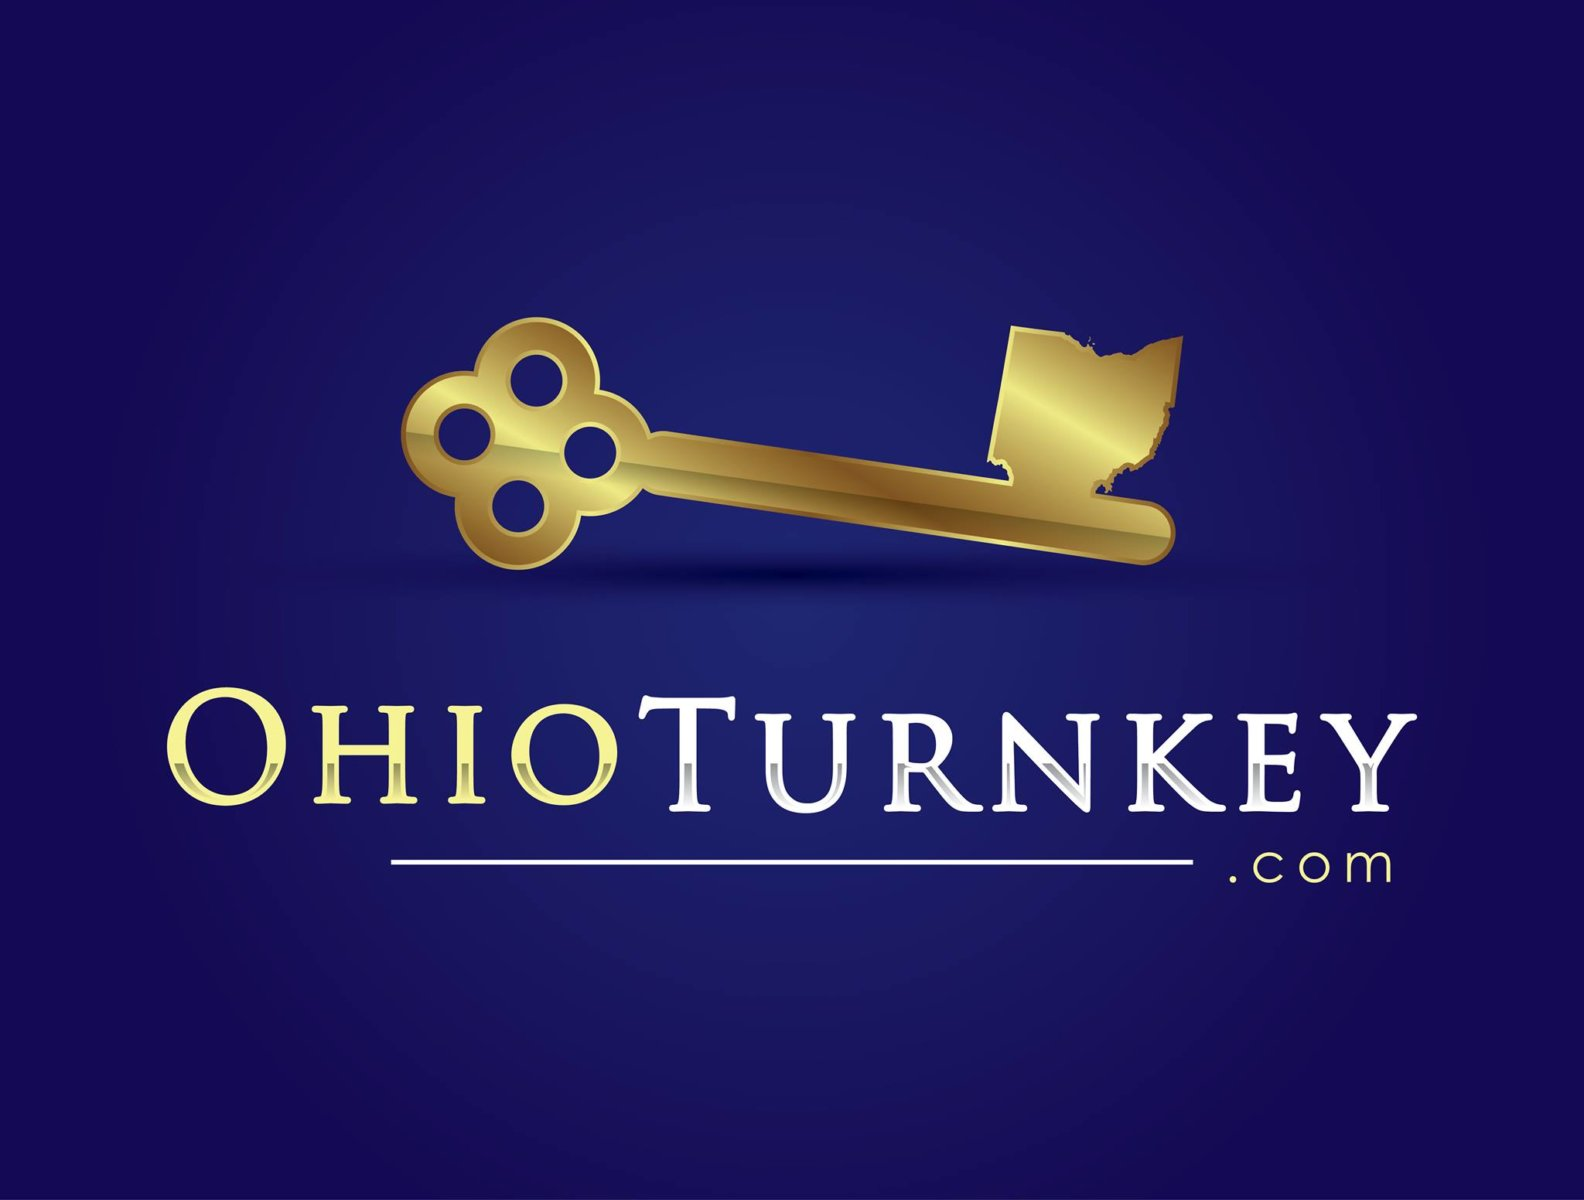 Ohio Turnkey logo